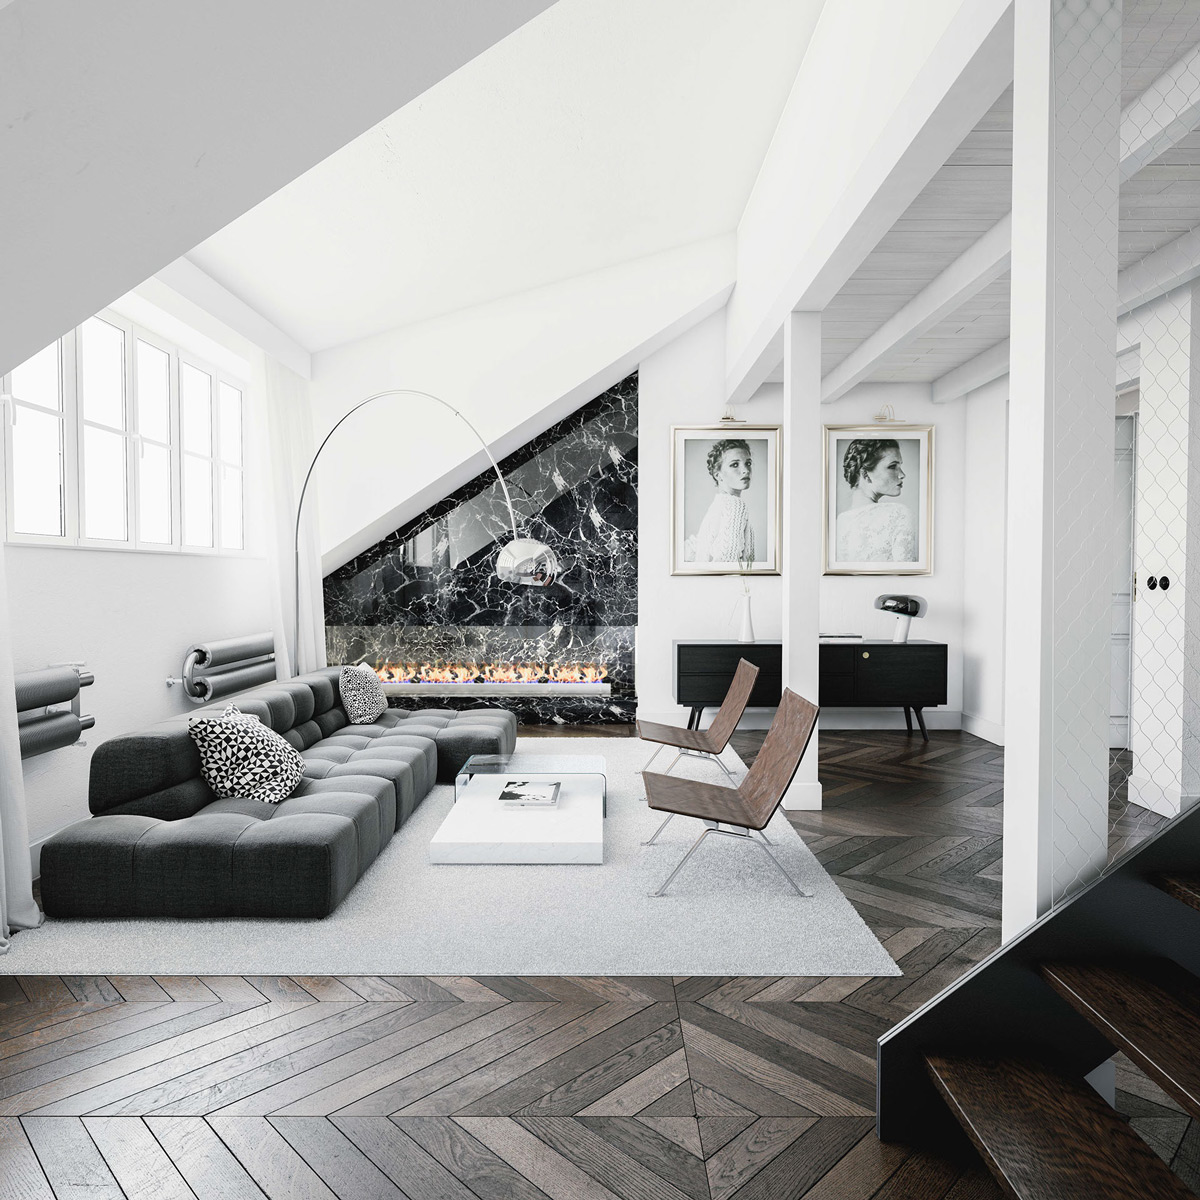 dark wood furniture living room decorating ideas best color schemes for small rooms 30 black white that work their monochrome magic 2